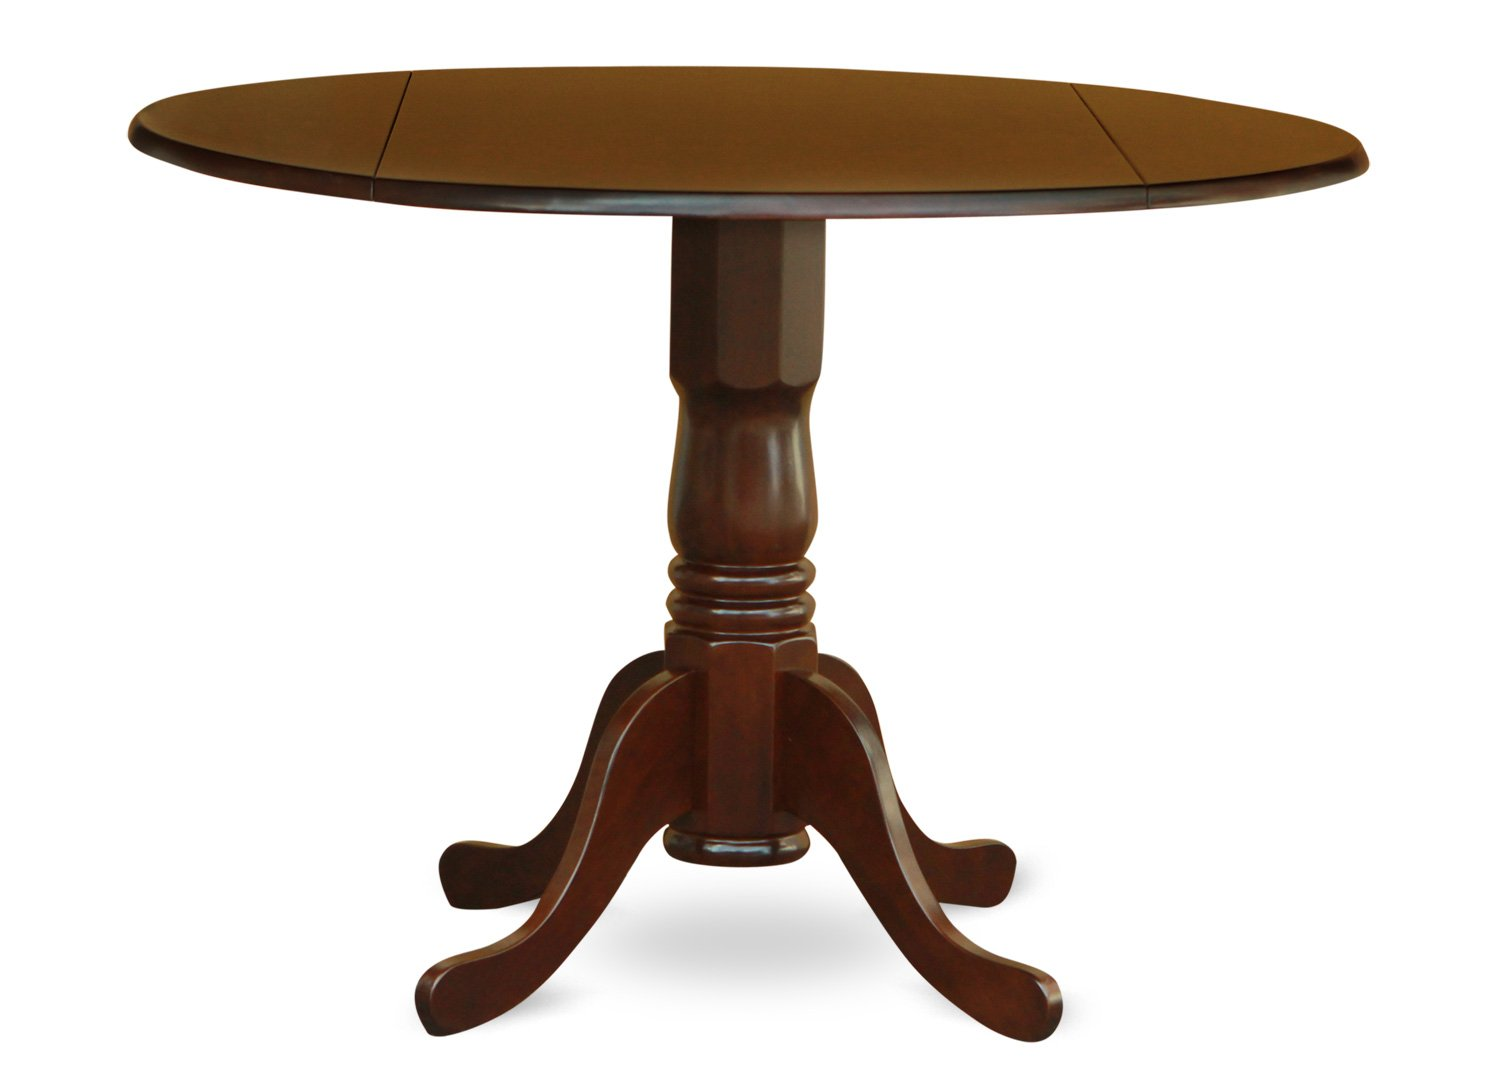 Amazoncom East West Furniture DLTMAHTP Round Table With Two - Round pedestal dining table set with leaf